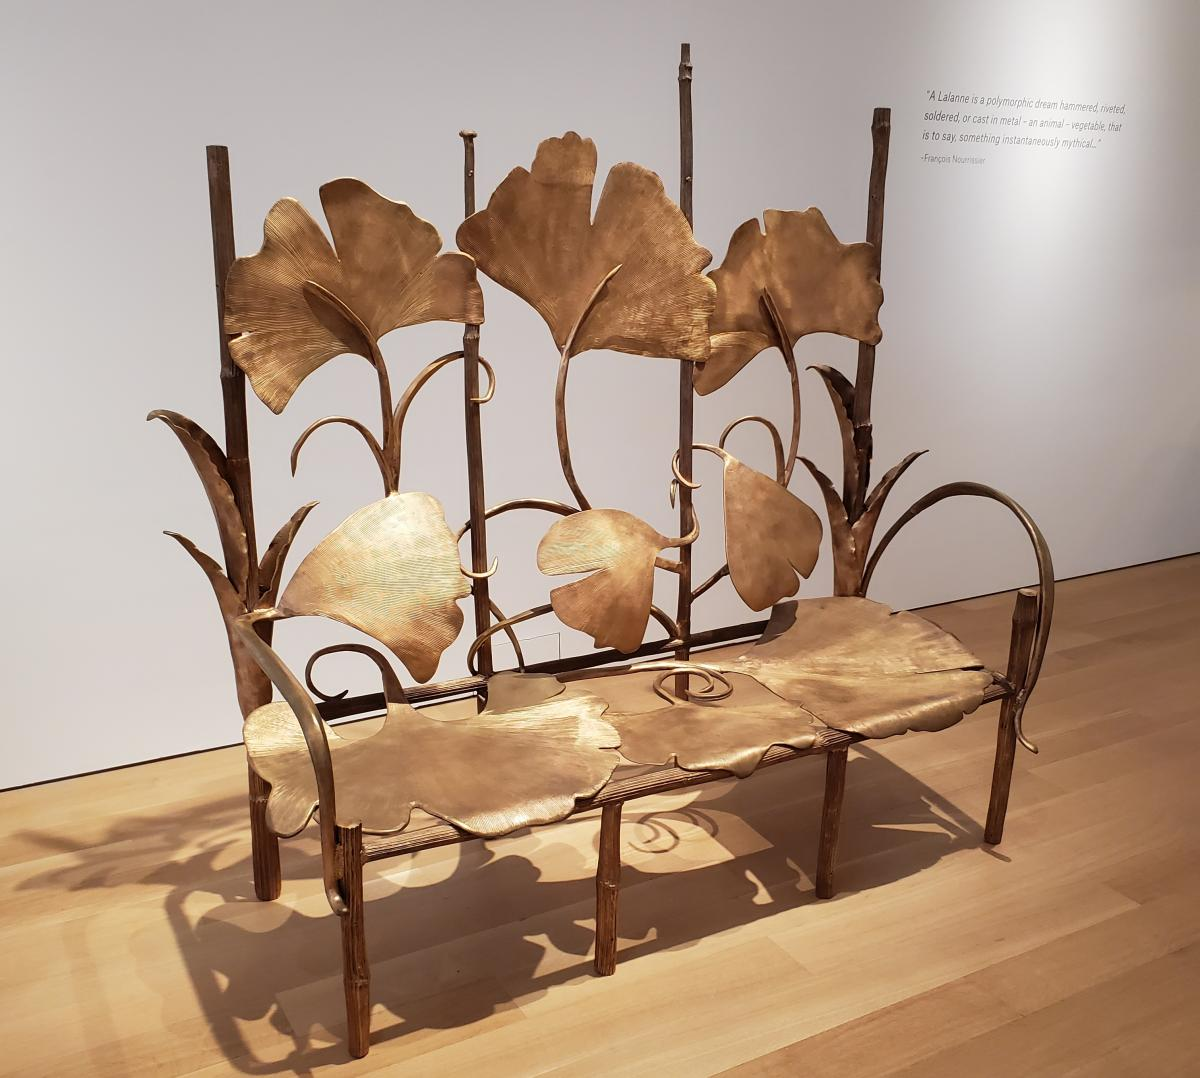 Chaise by Claude Lalanne